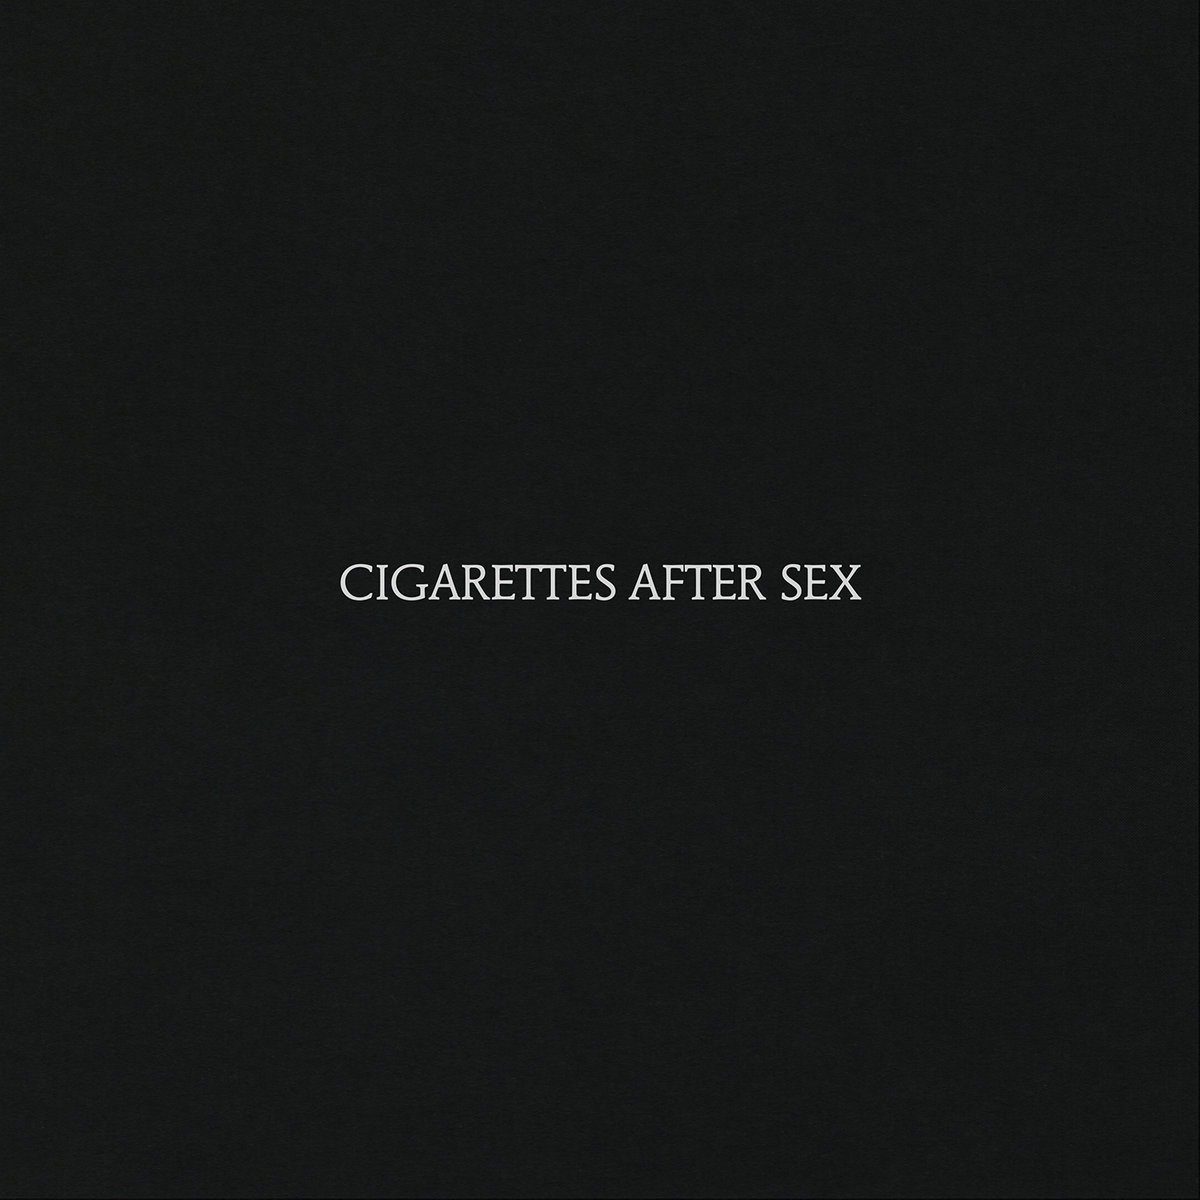 CIGARETTES AFTER SEX CIGARETTES AFTER SEX